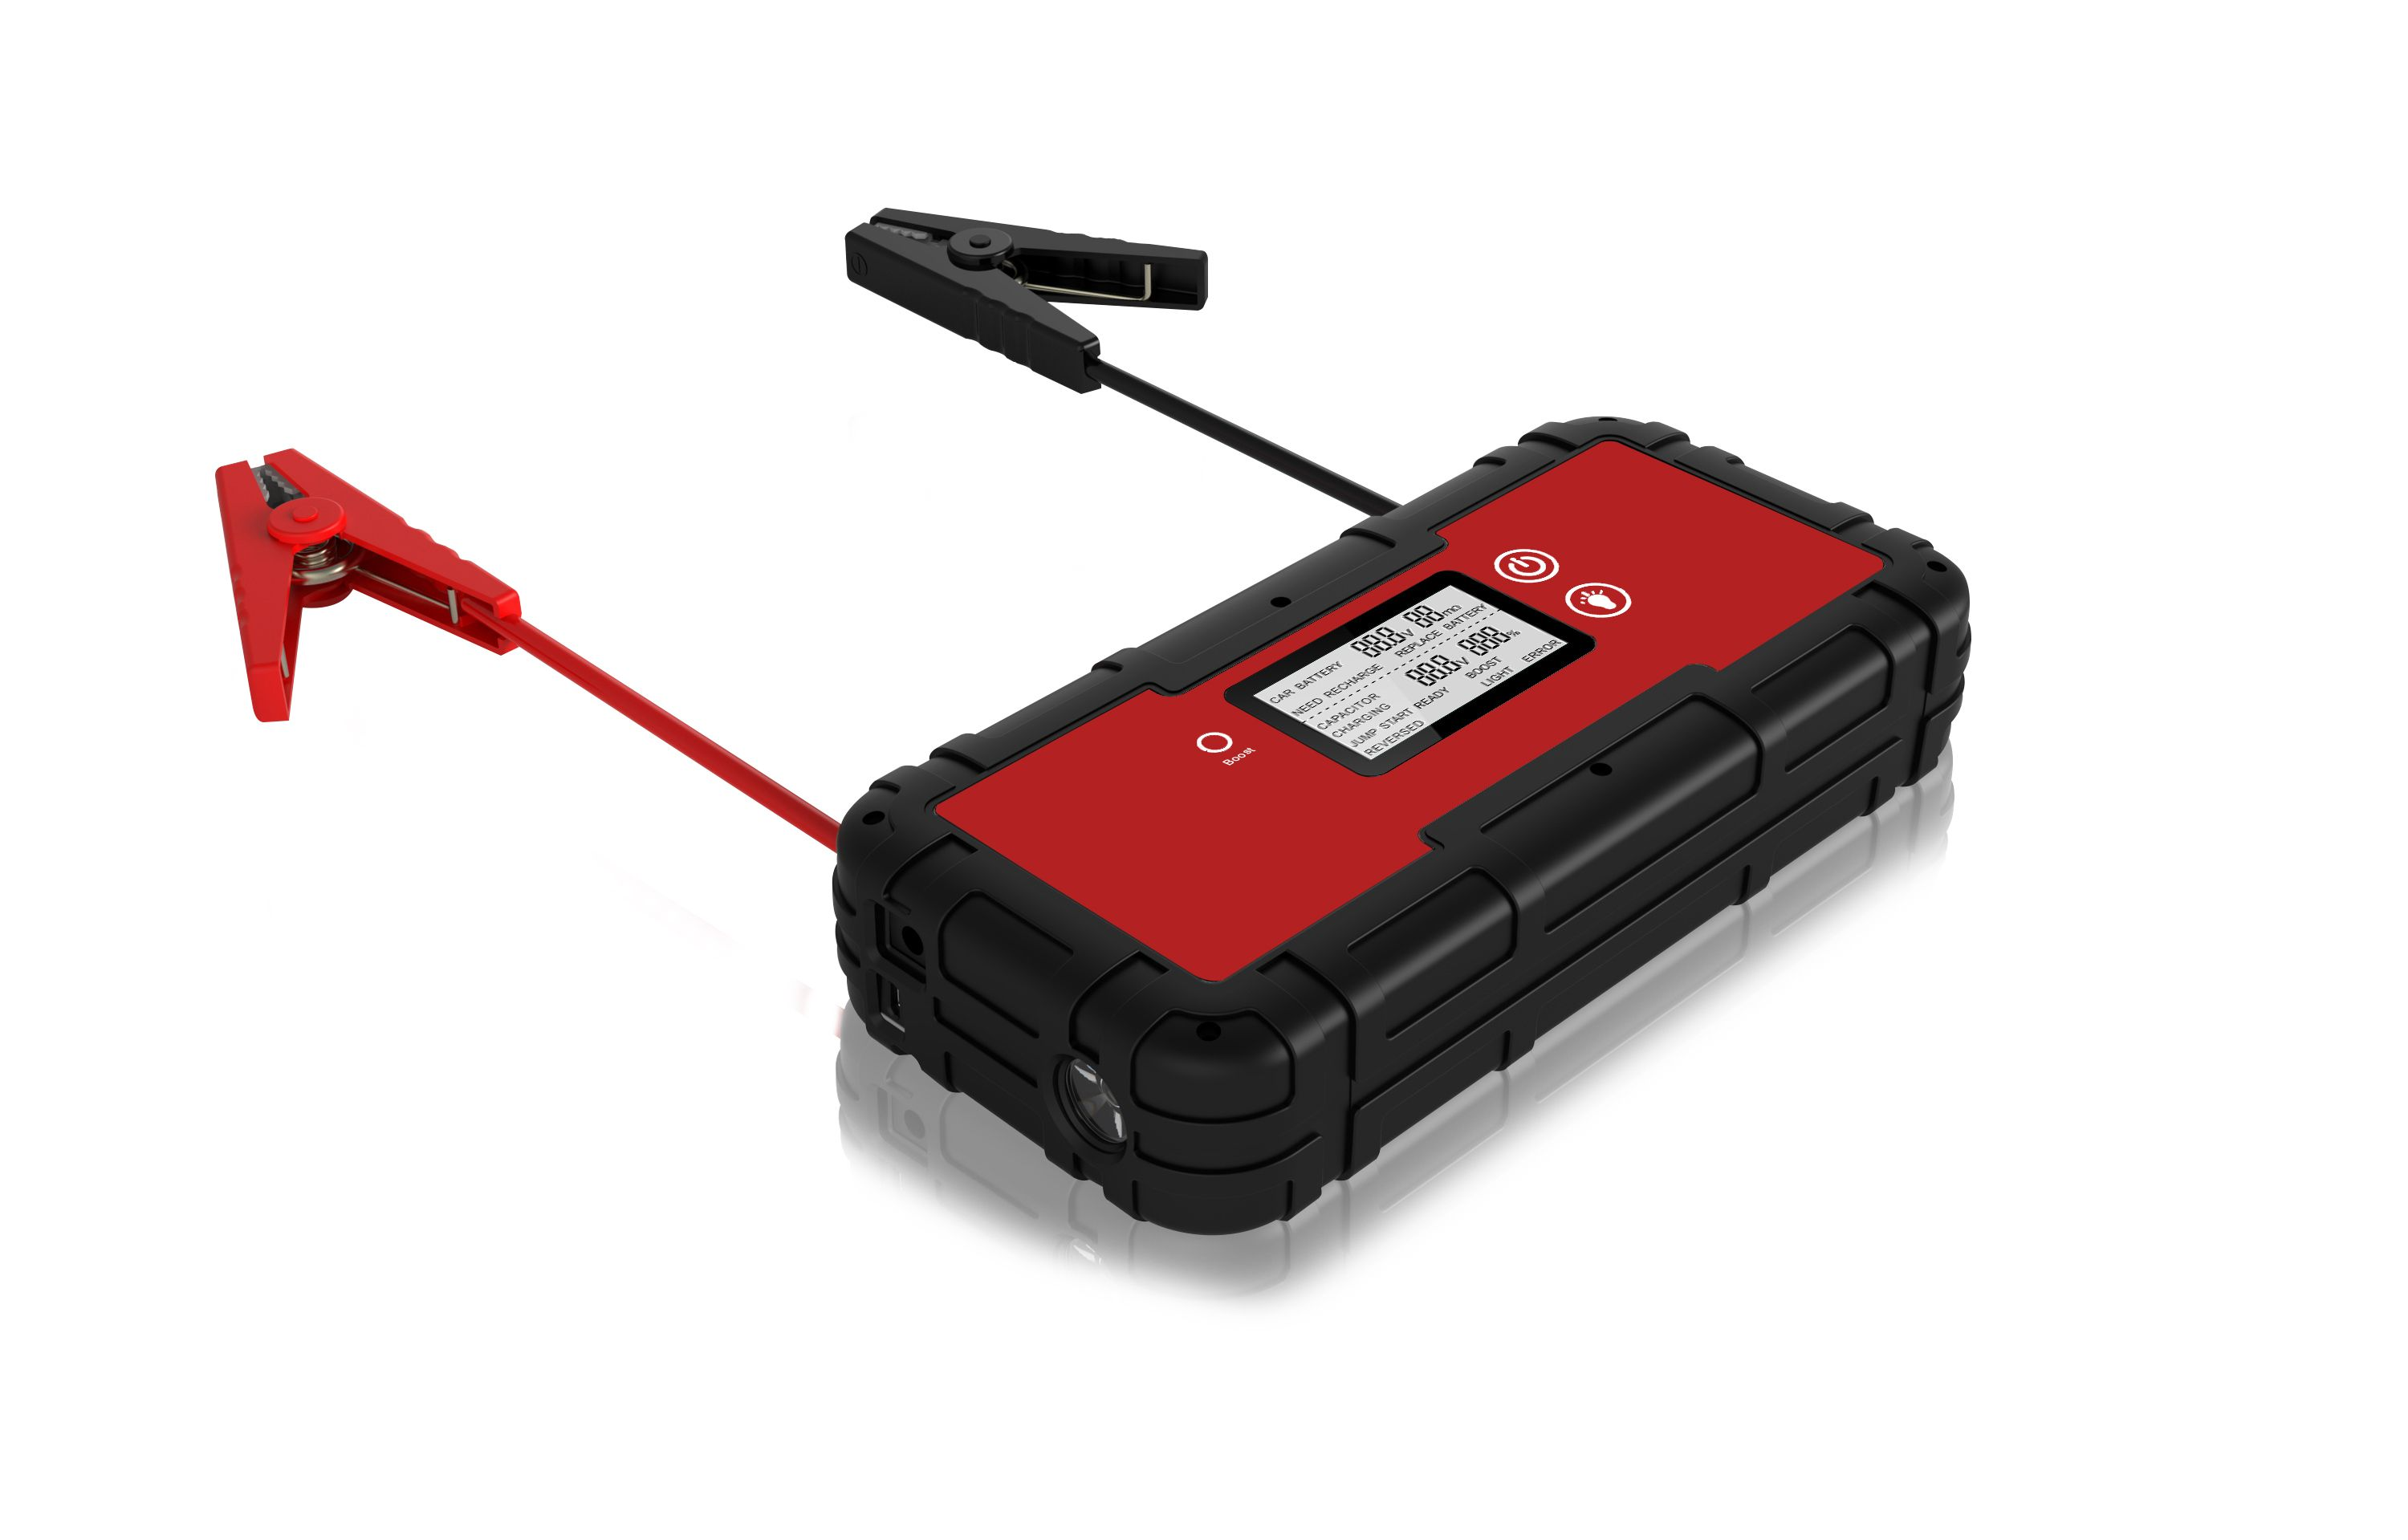 Our Hot Sell Epower 99a Is New Technology Ultra Capacitor Jump Start With Built In Intelligent Protection It Is Capacitor New Technology Vehicle Jumper Cables